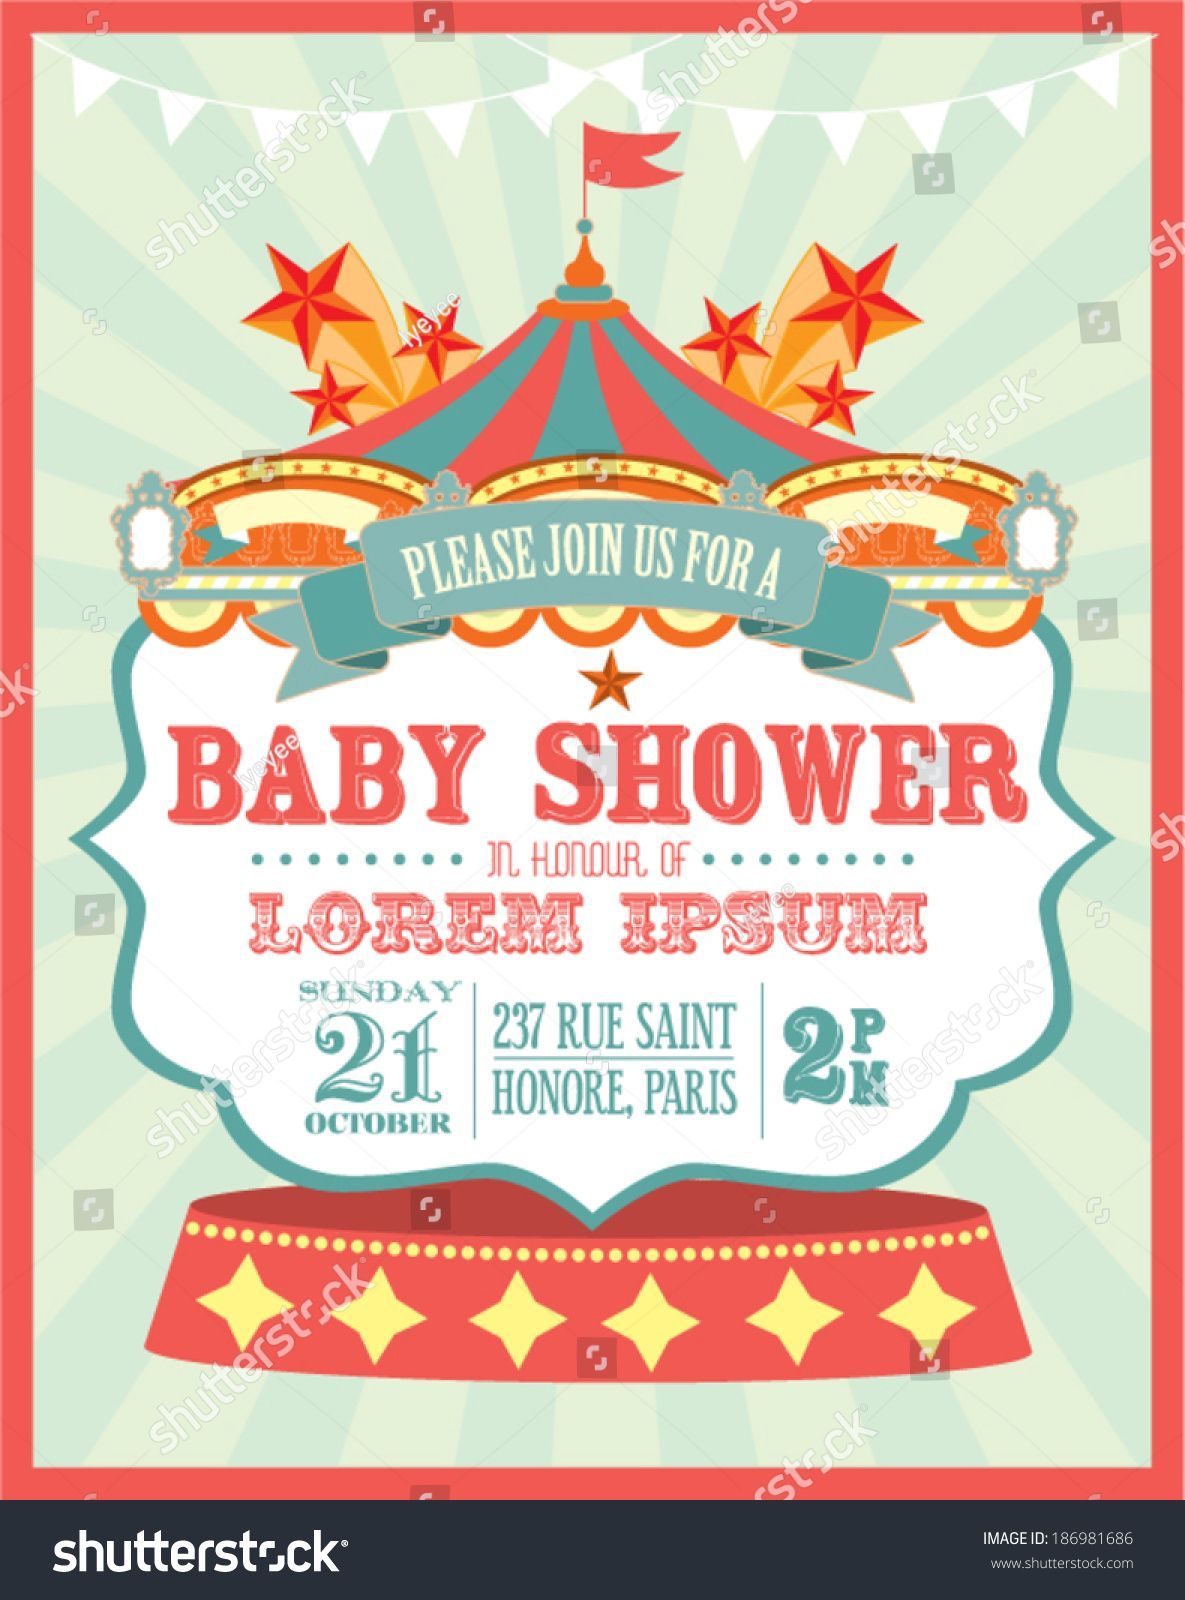 carnival baby shower invitation card template vector/illustration